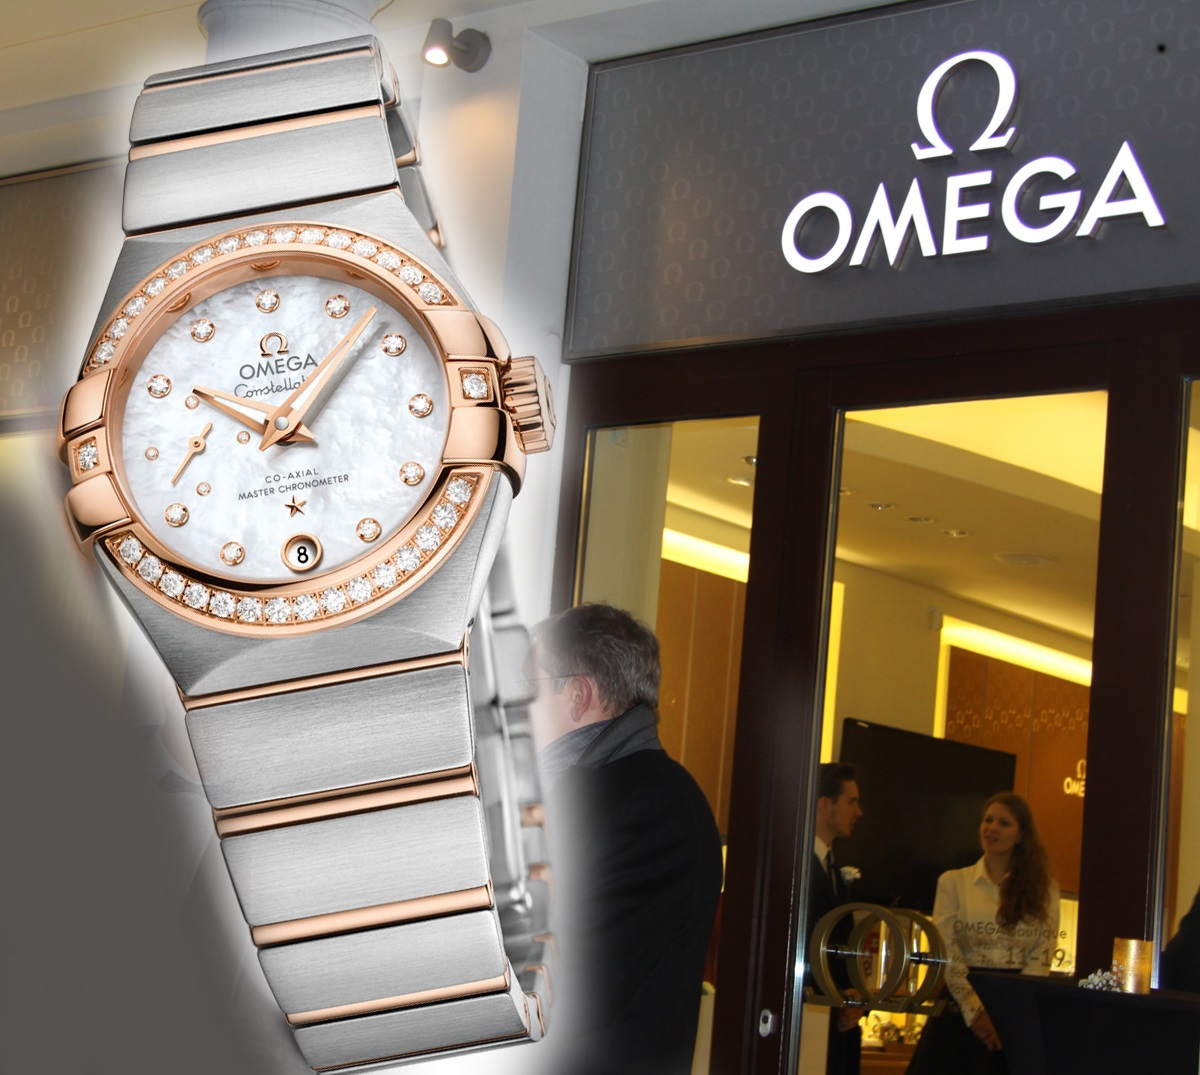 Omega Constellation Petite Seconde. Wieczór w butiku Omega